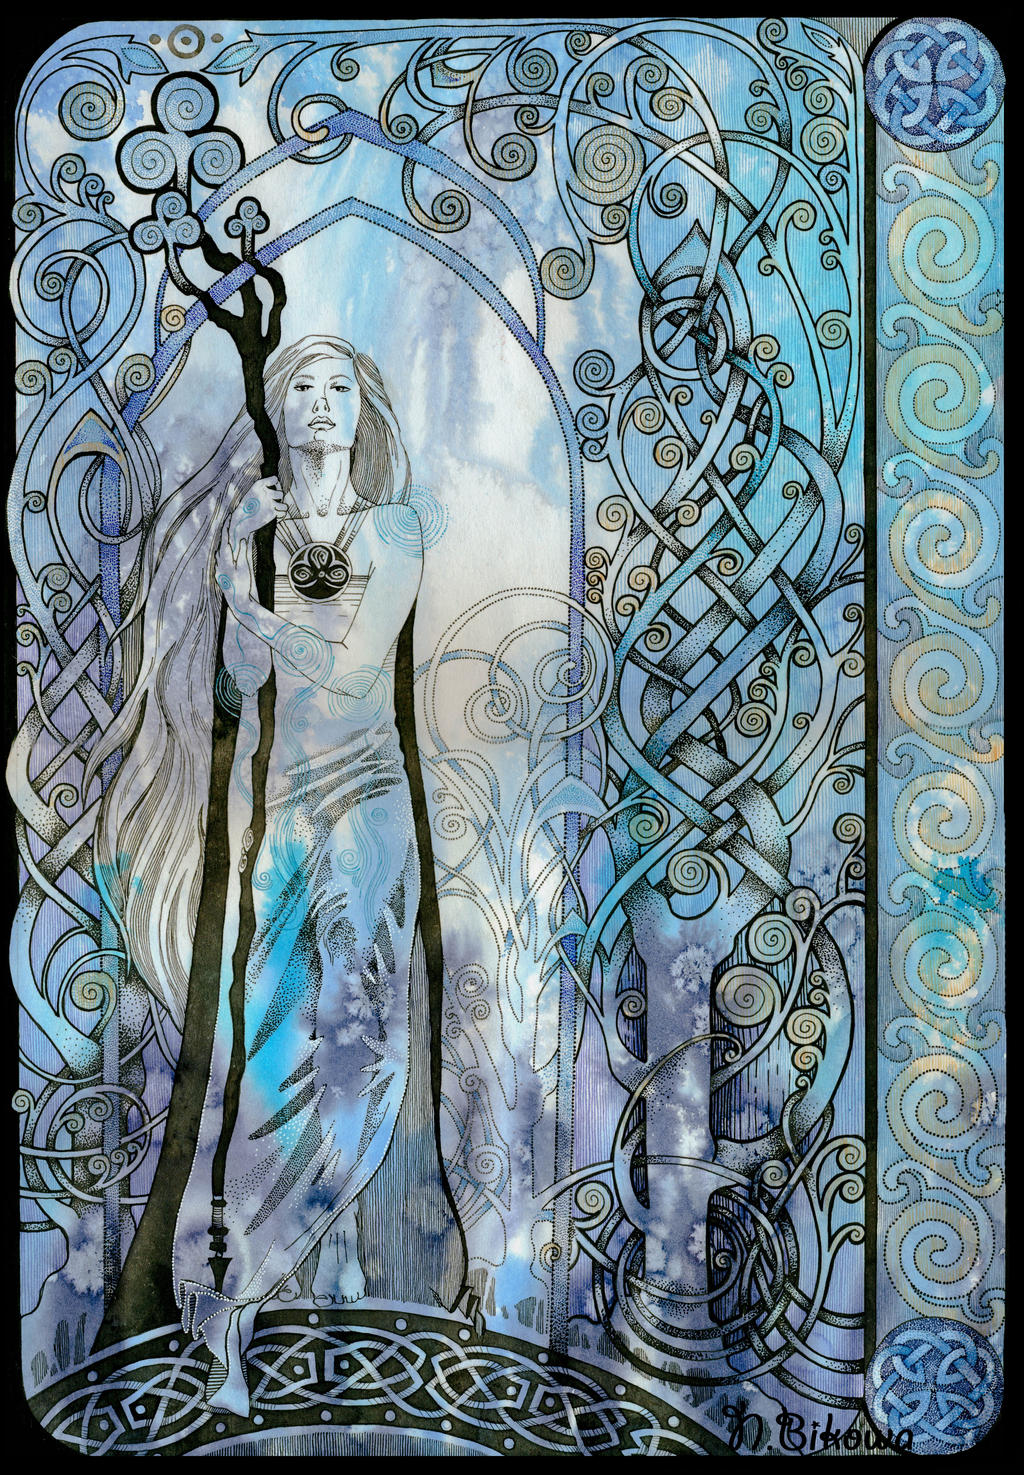 Deviantart coloring clubs - Dame Clubs Celtic Ornament By Queerartist